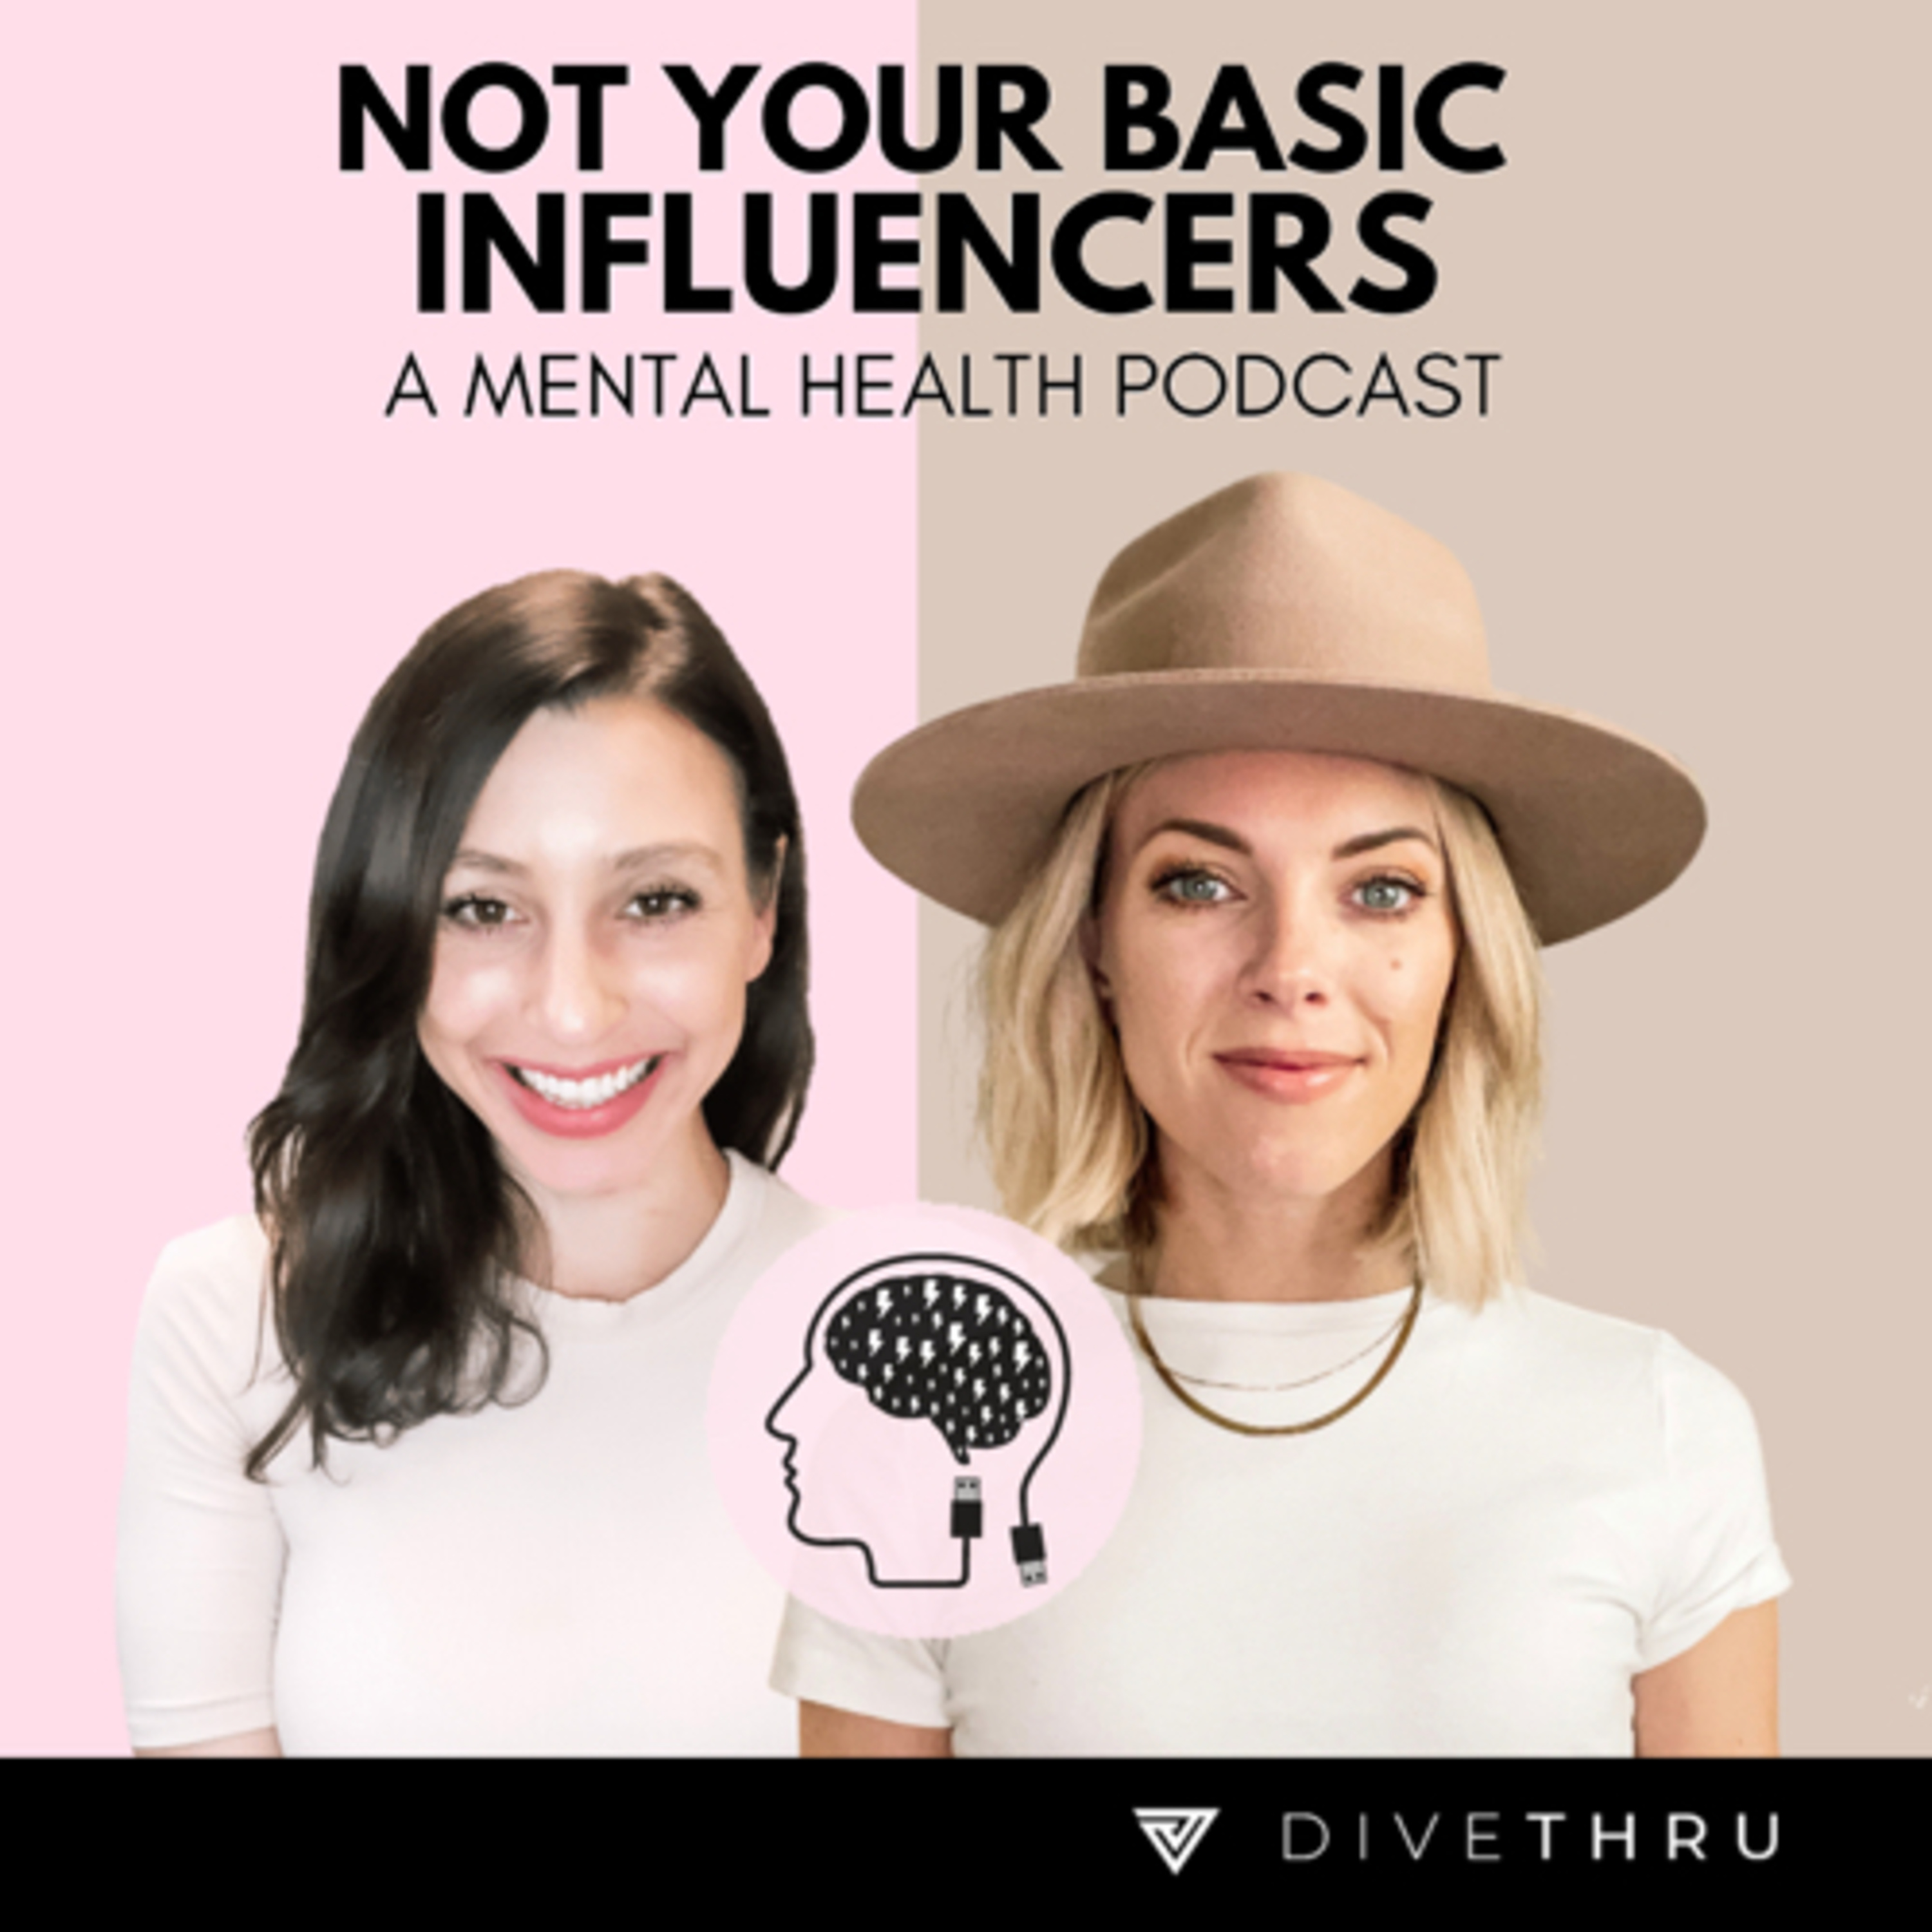 Not Your Basic Influencers